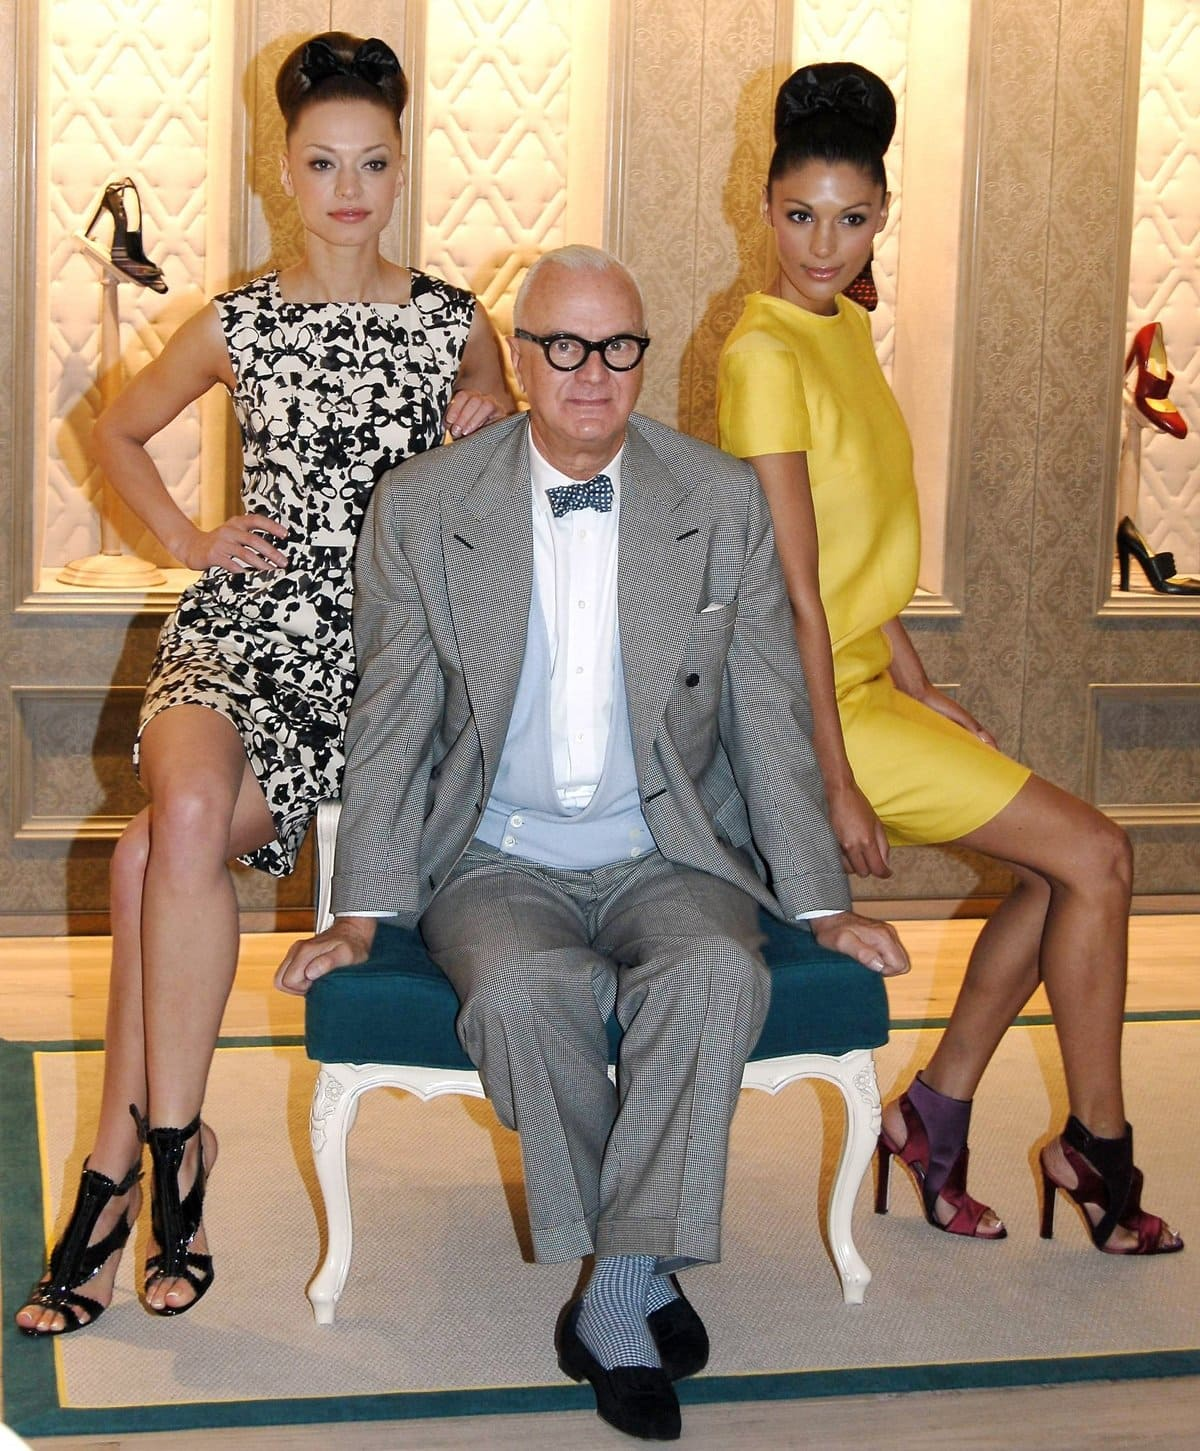 Lithuanian-born actress and model Irma Mali, footwear designer Manolo Blahnik, and model Semina Zia celebrate the opening of his exclusive new boutique at Brown Thomas in Dublin